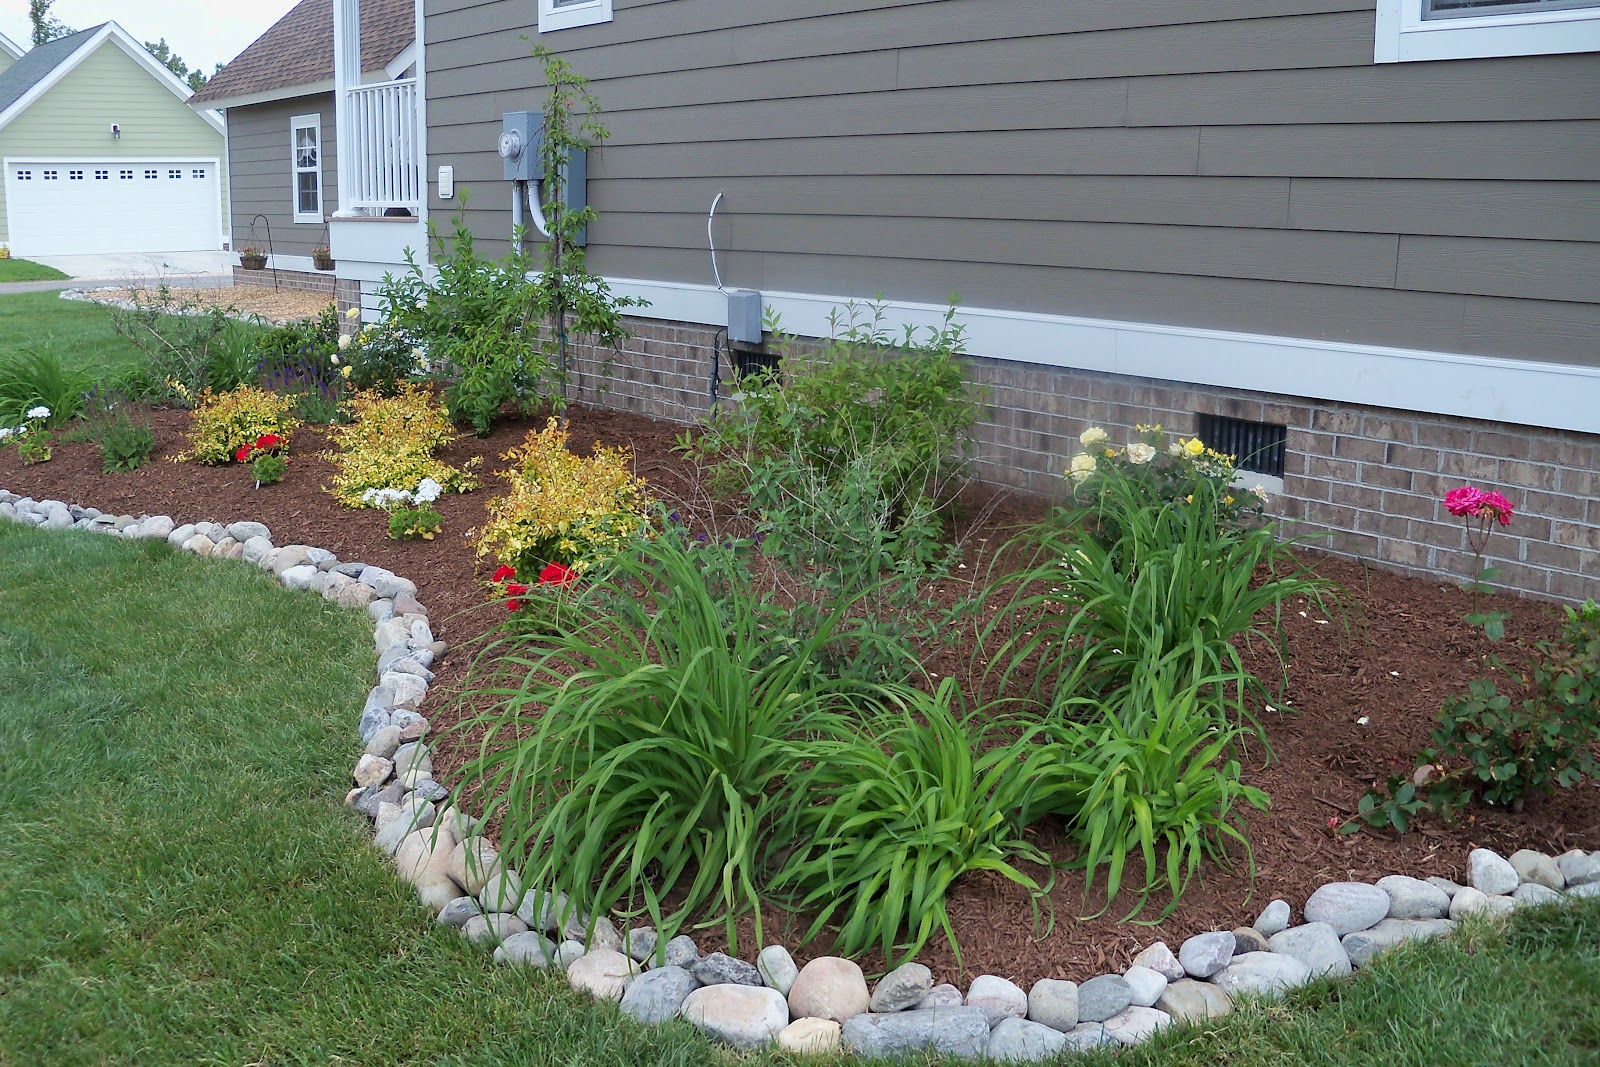 river rock garden edging ideas photo - 5